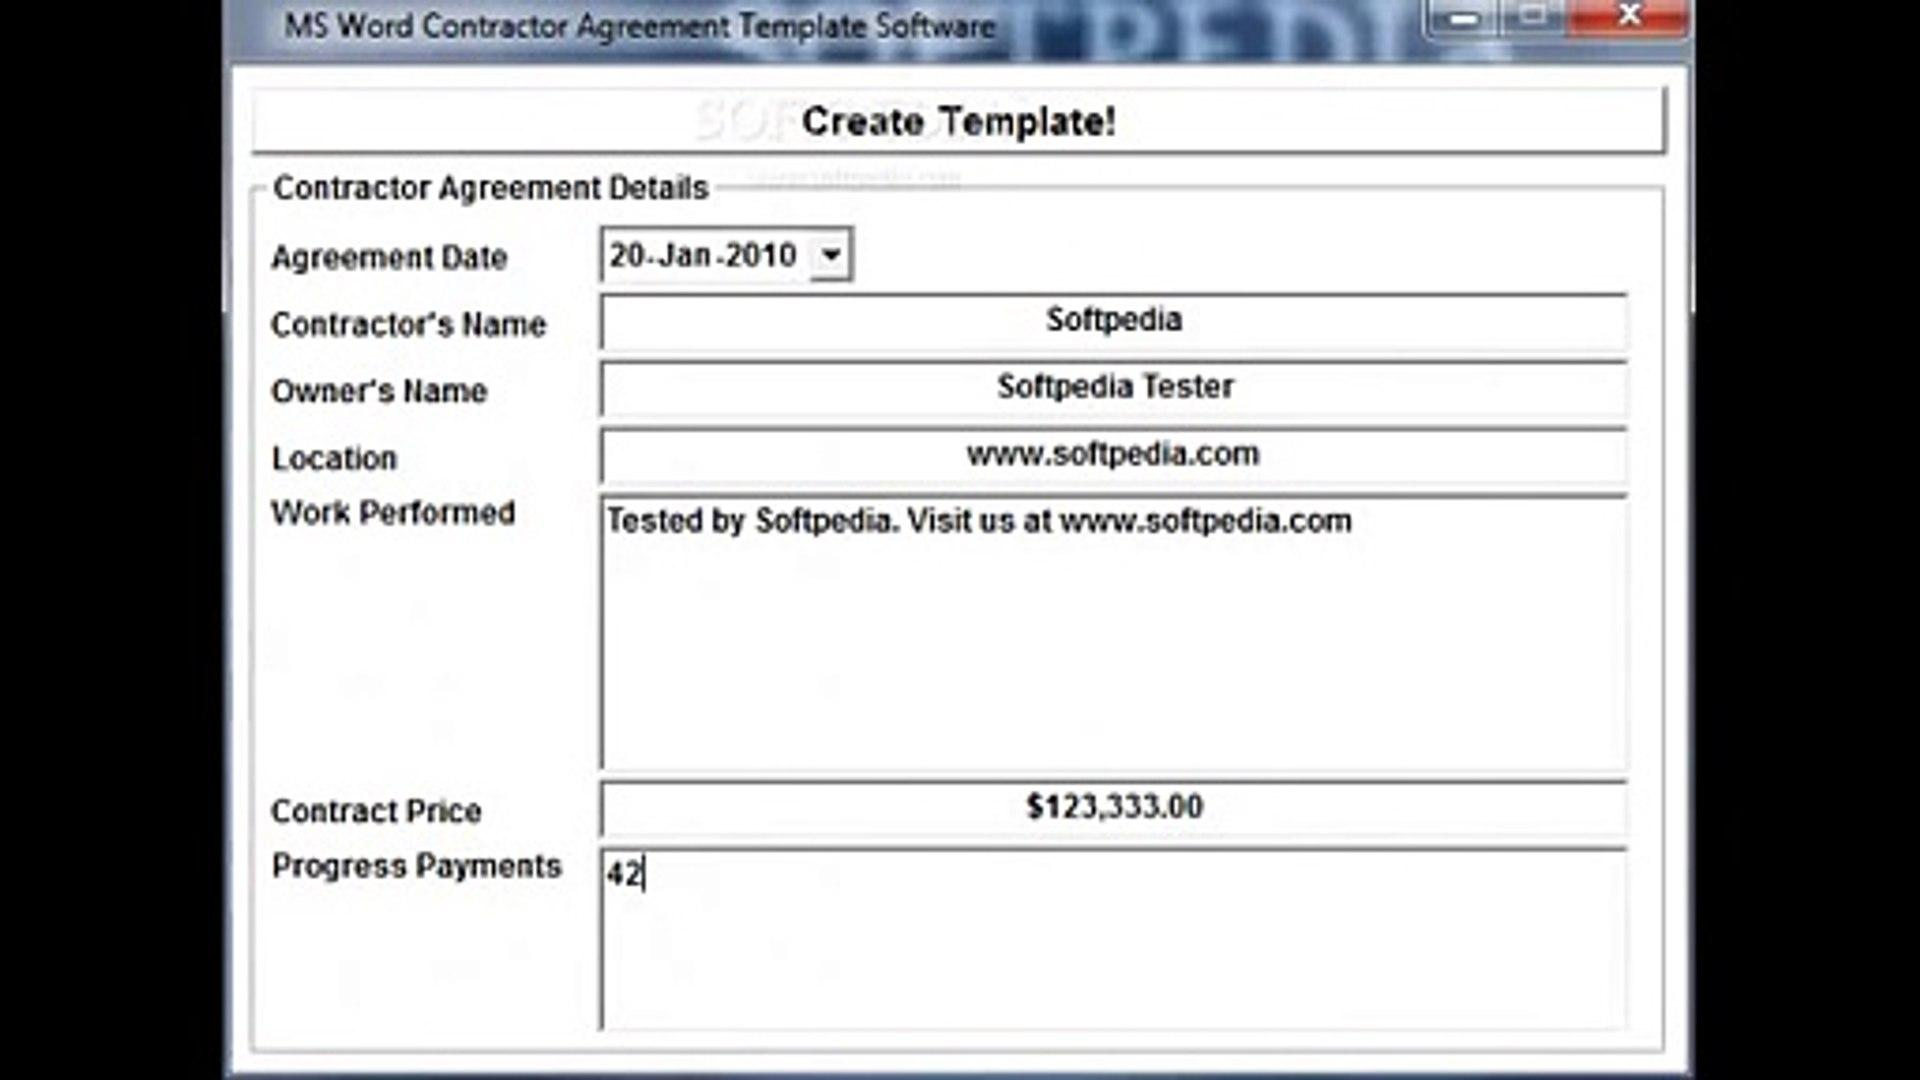 Contractor Agreement Template Software